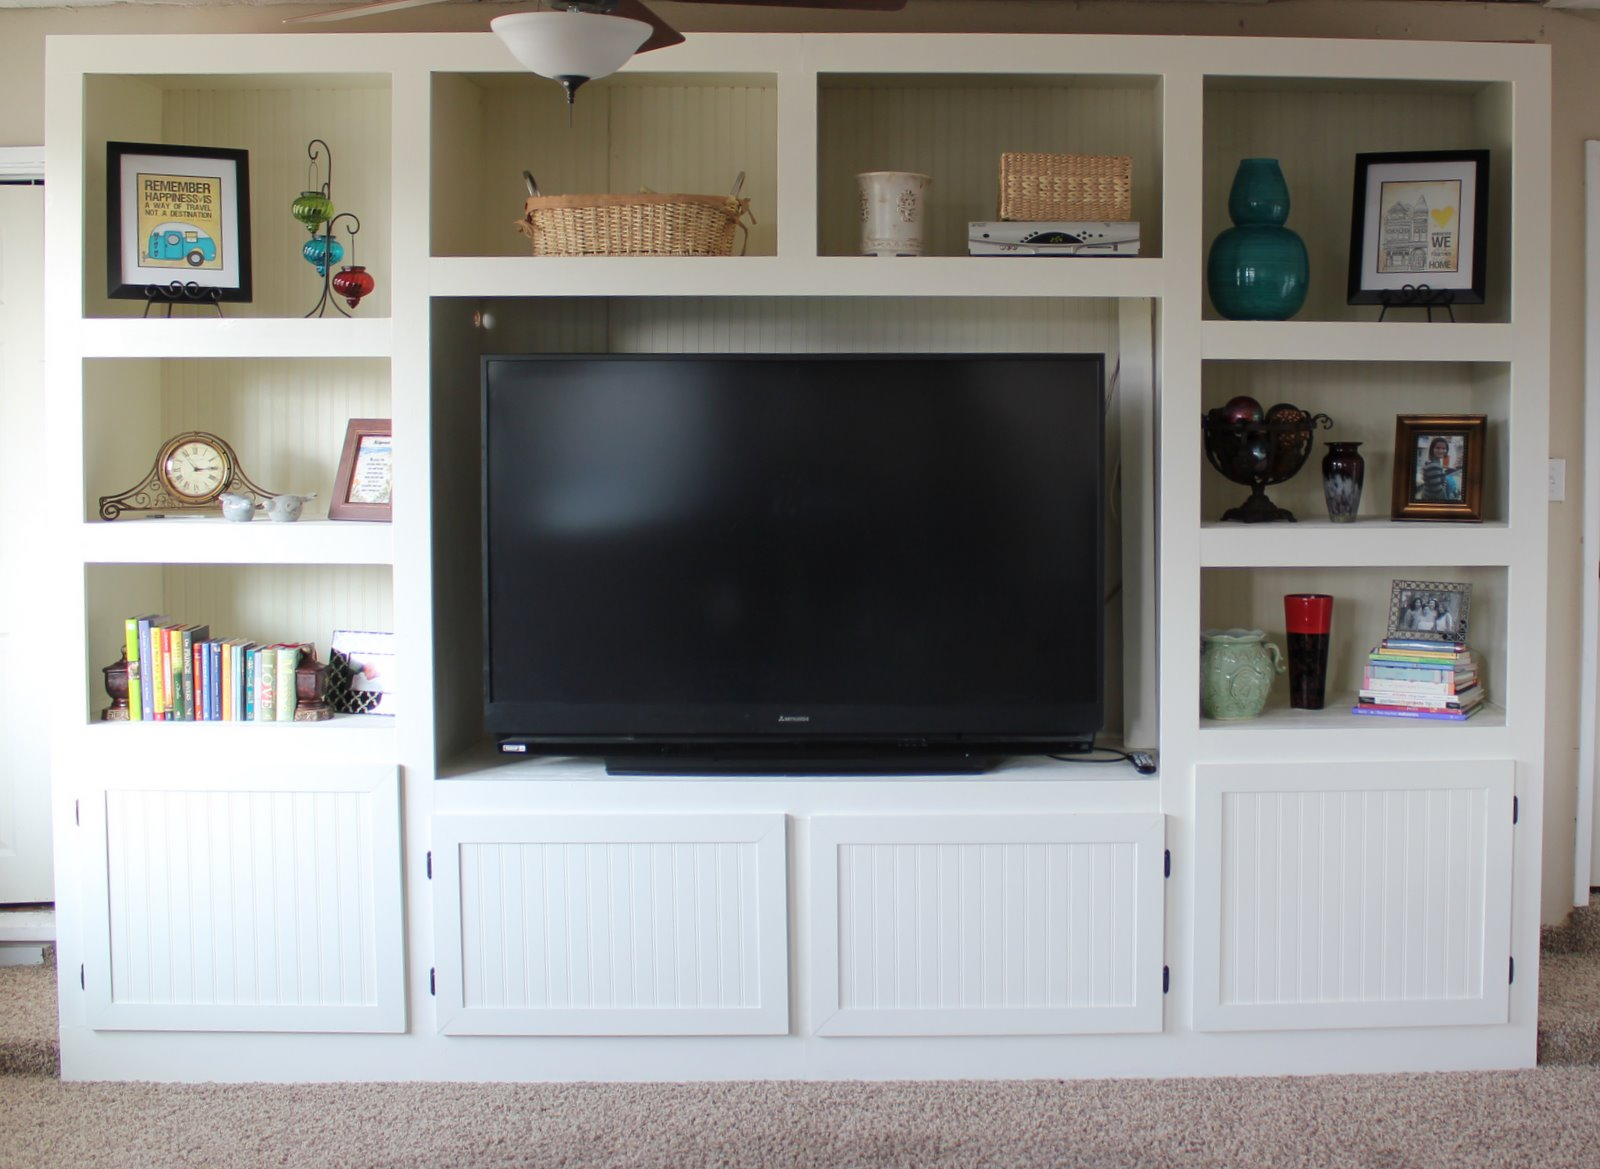 Remodelaholic | Living Room Renovation With DIY Entertainment ...